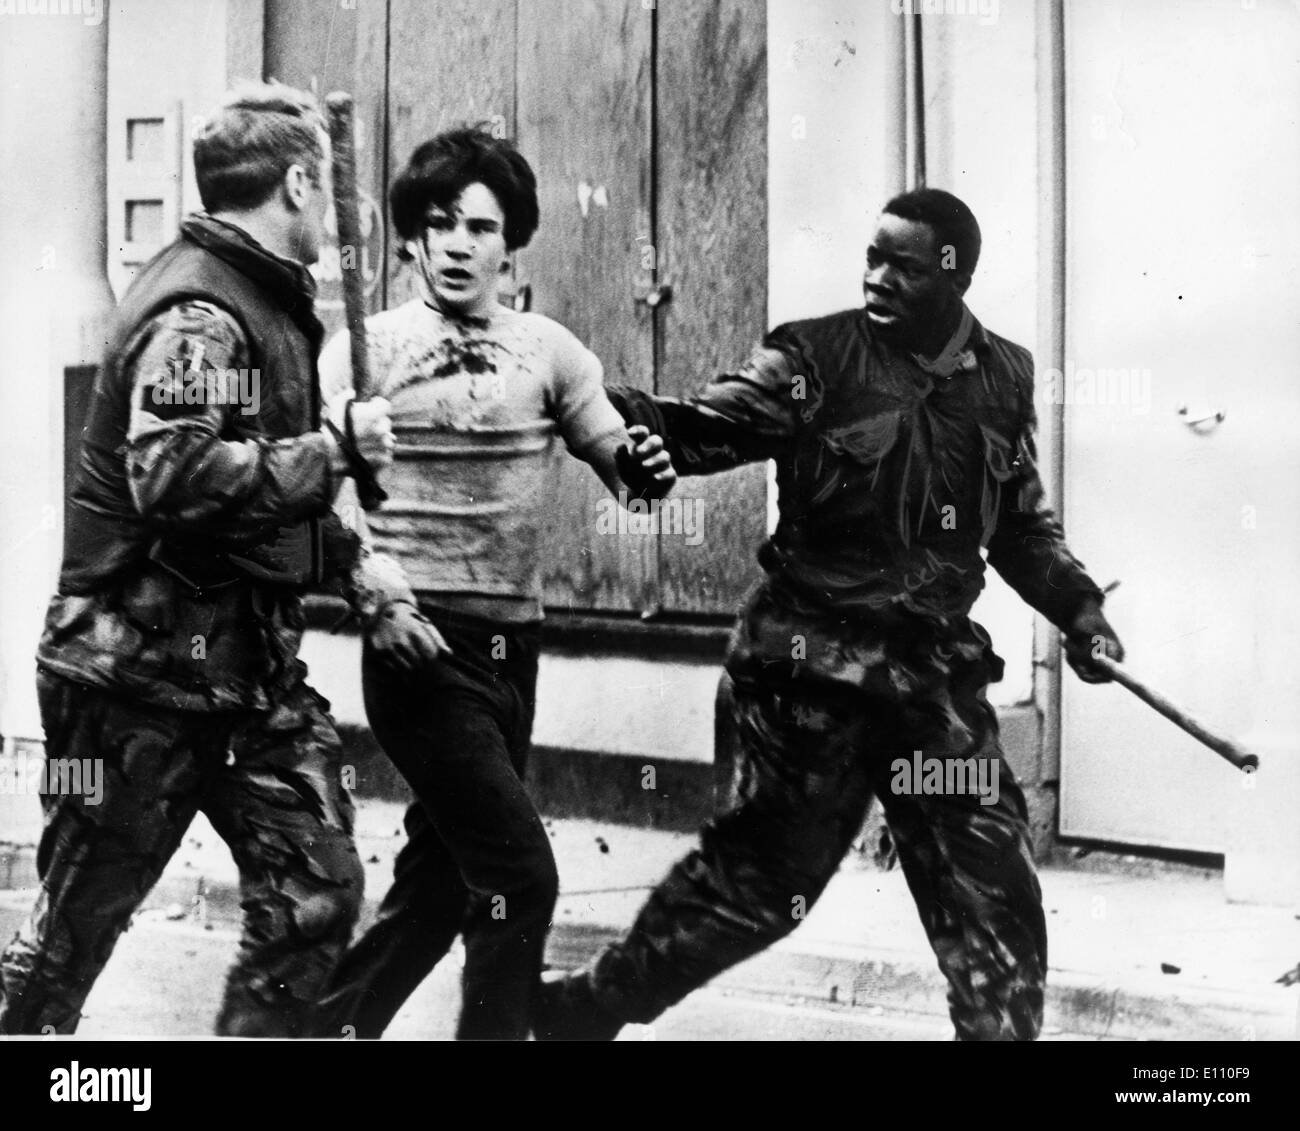 teenage demonstrator being arrested, during the Northern Ireland crisis - Stock Image